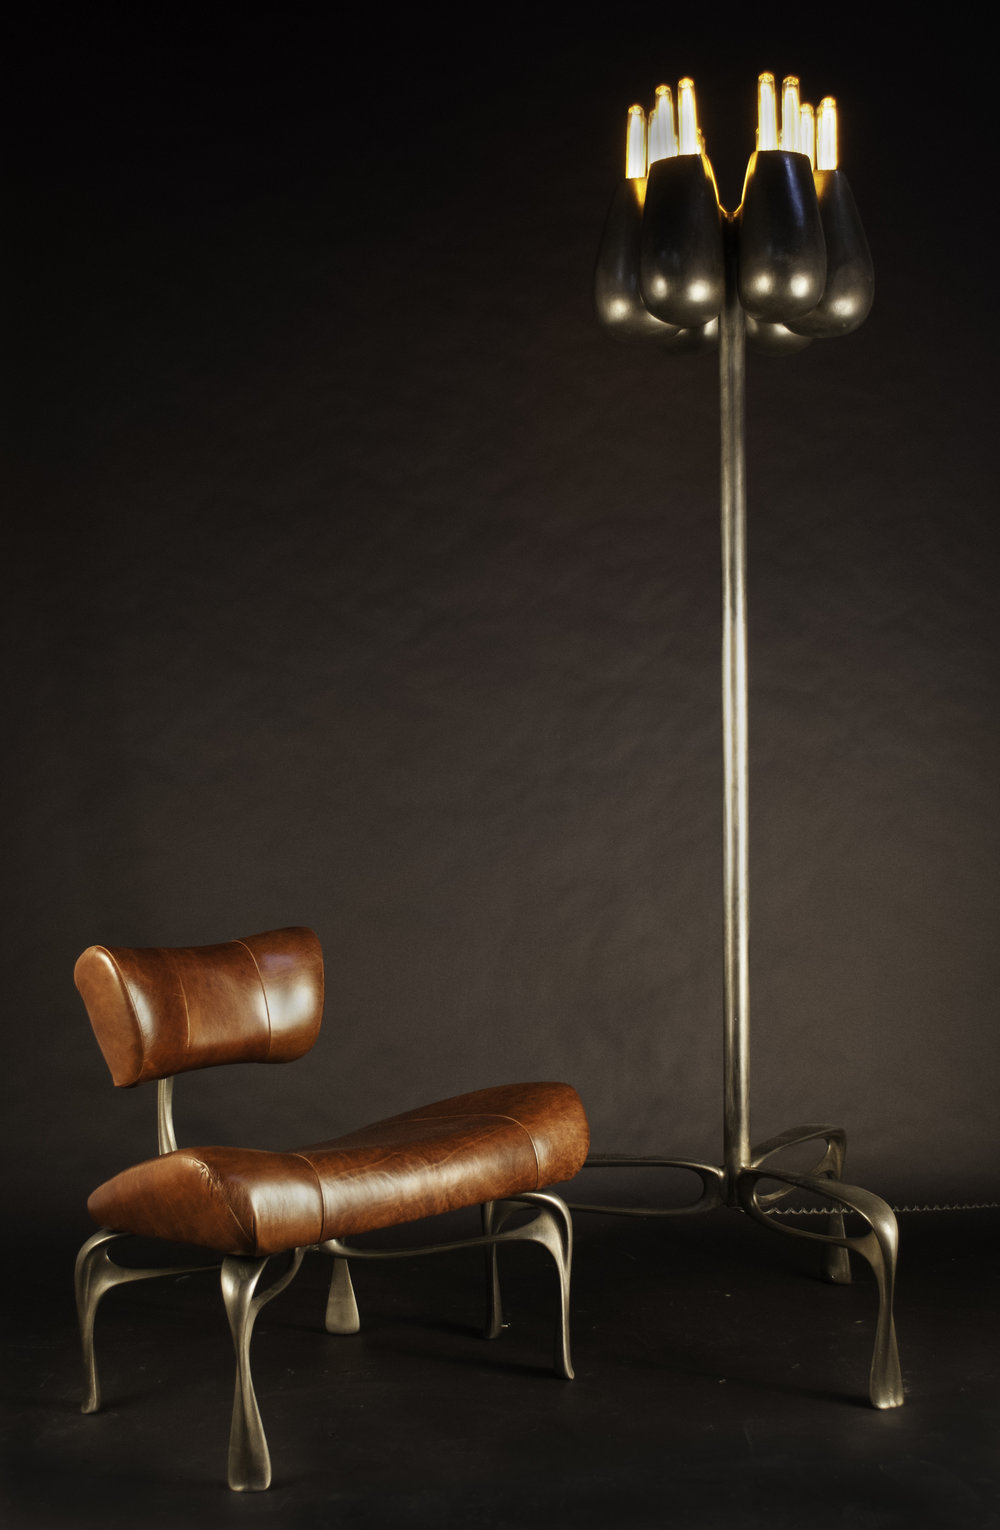 victory chair 4 and lamp - a.jpg